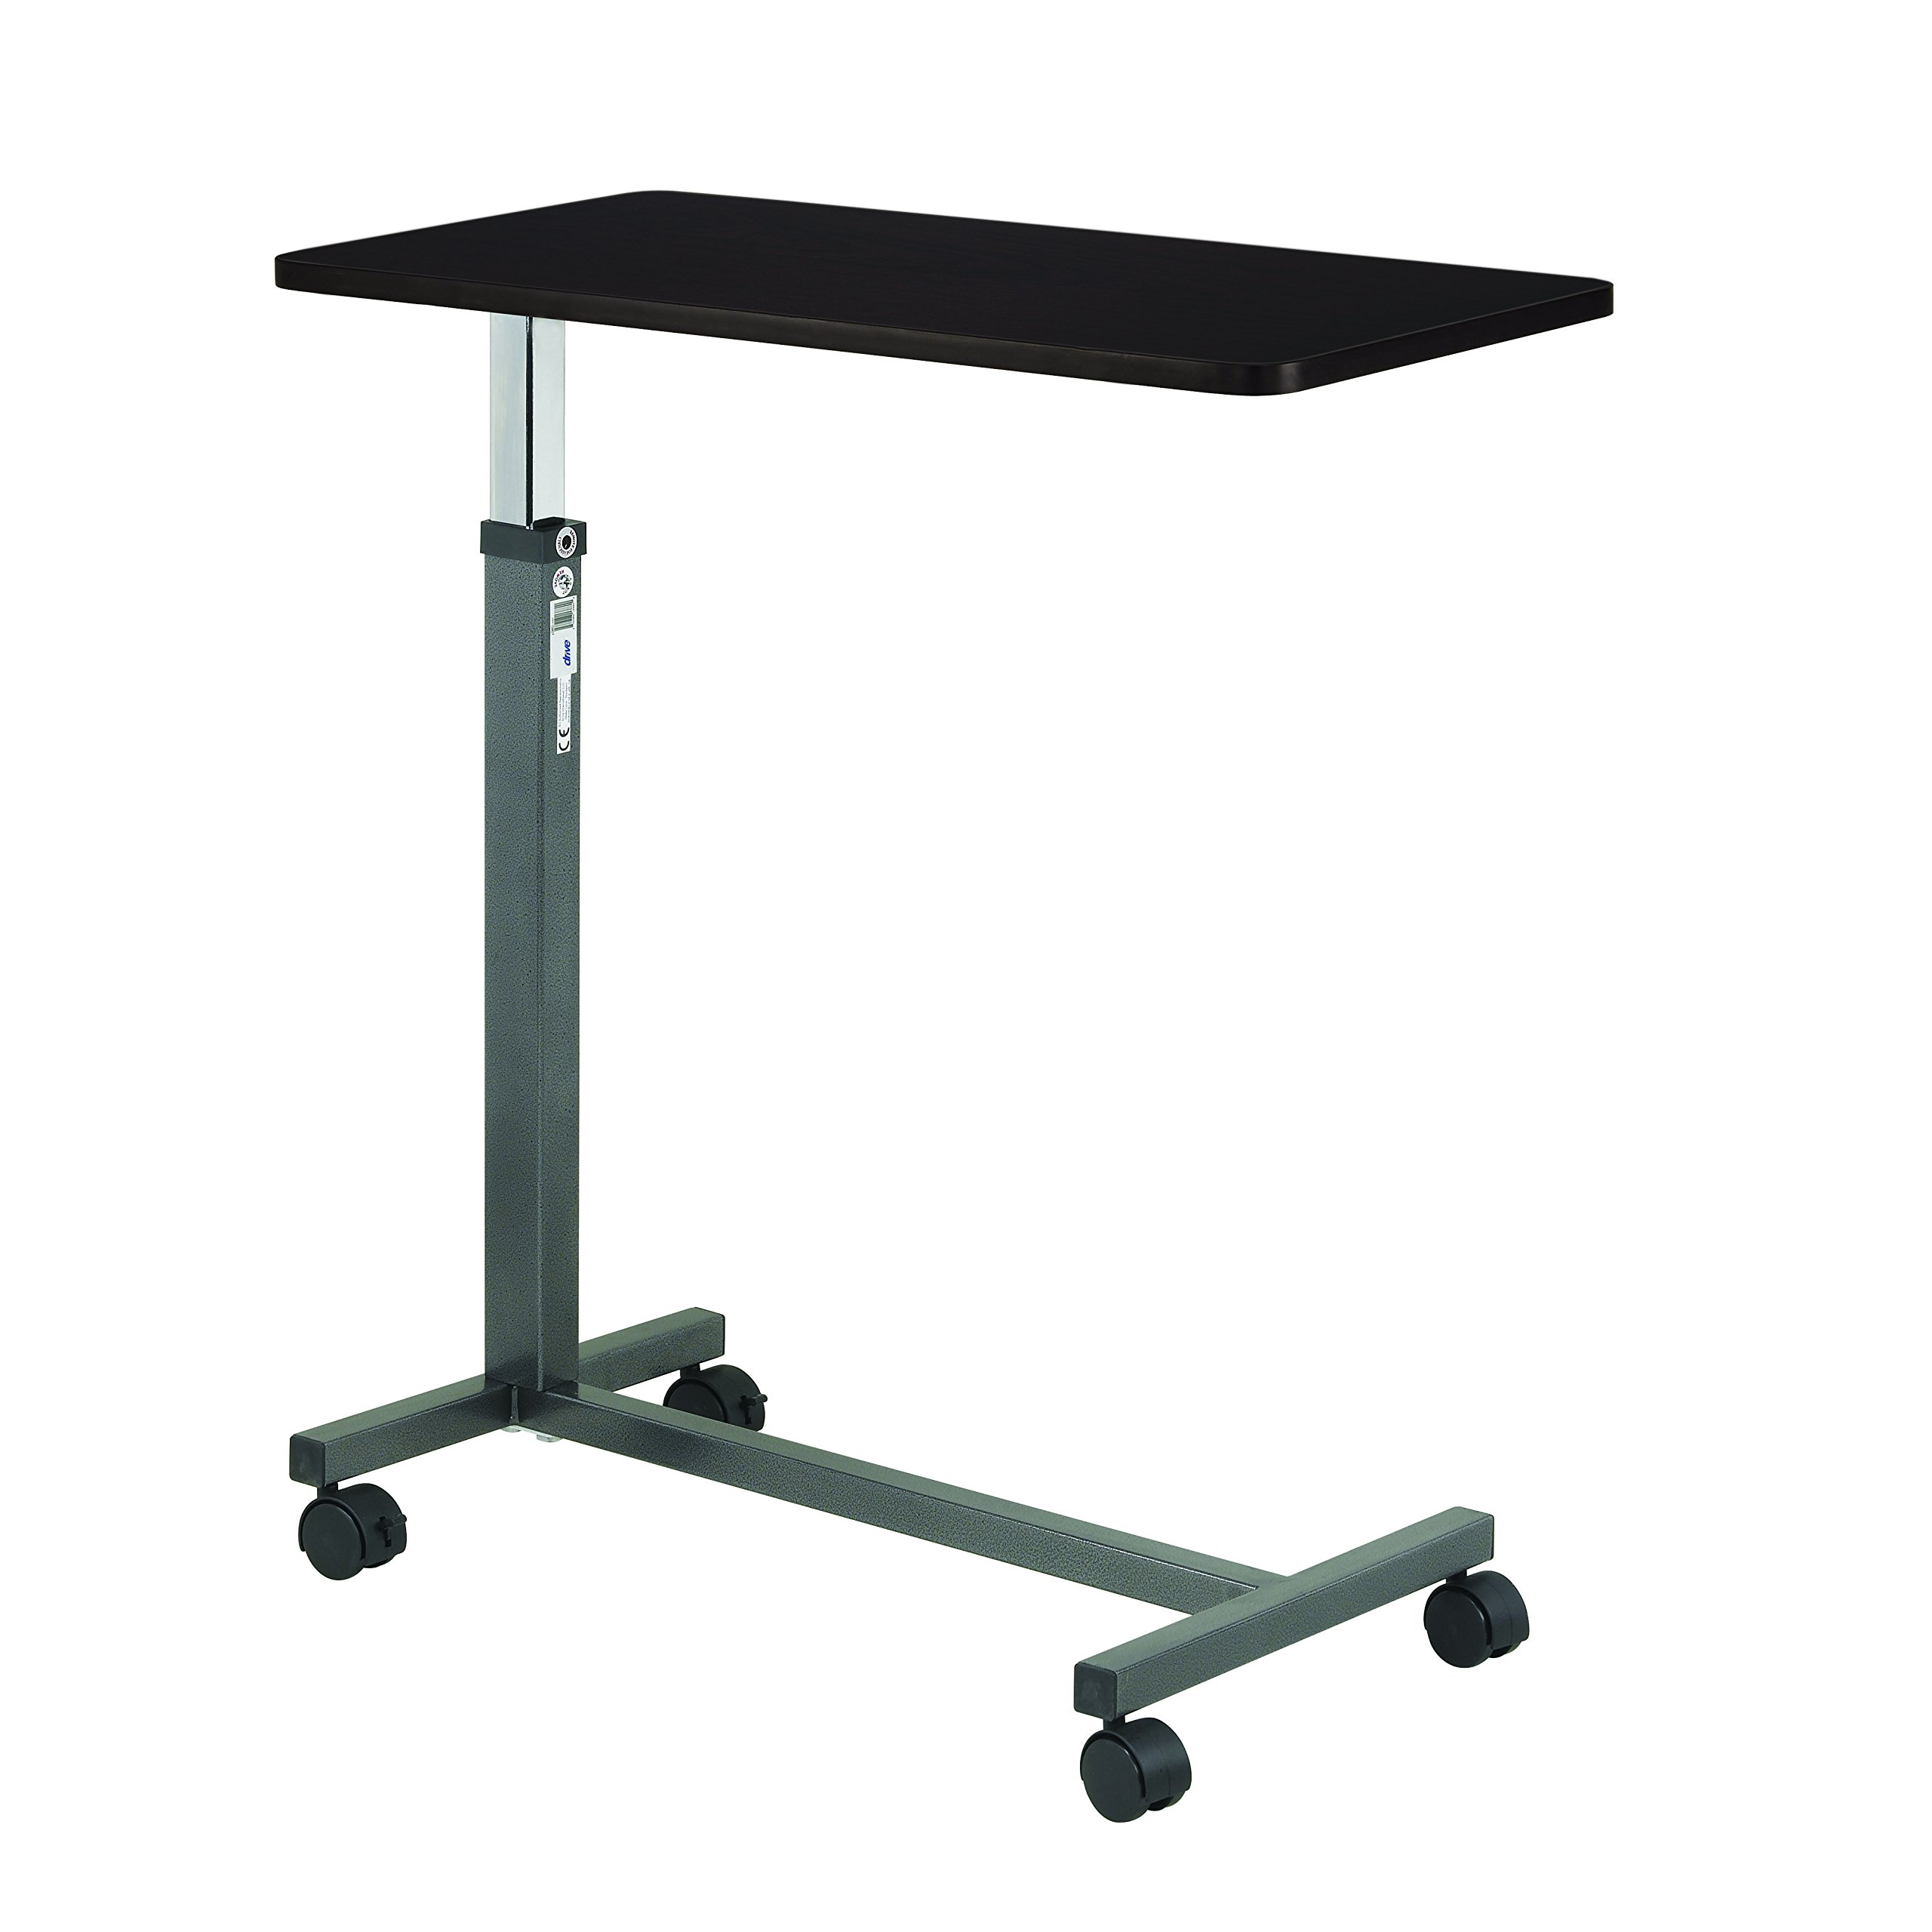 Drive Non Tilt Top Overbed Table, Silver Vein, Model - 13067